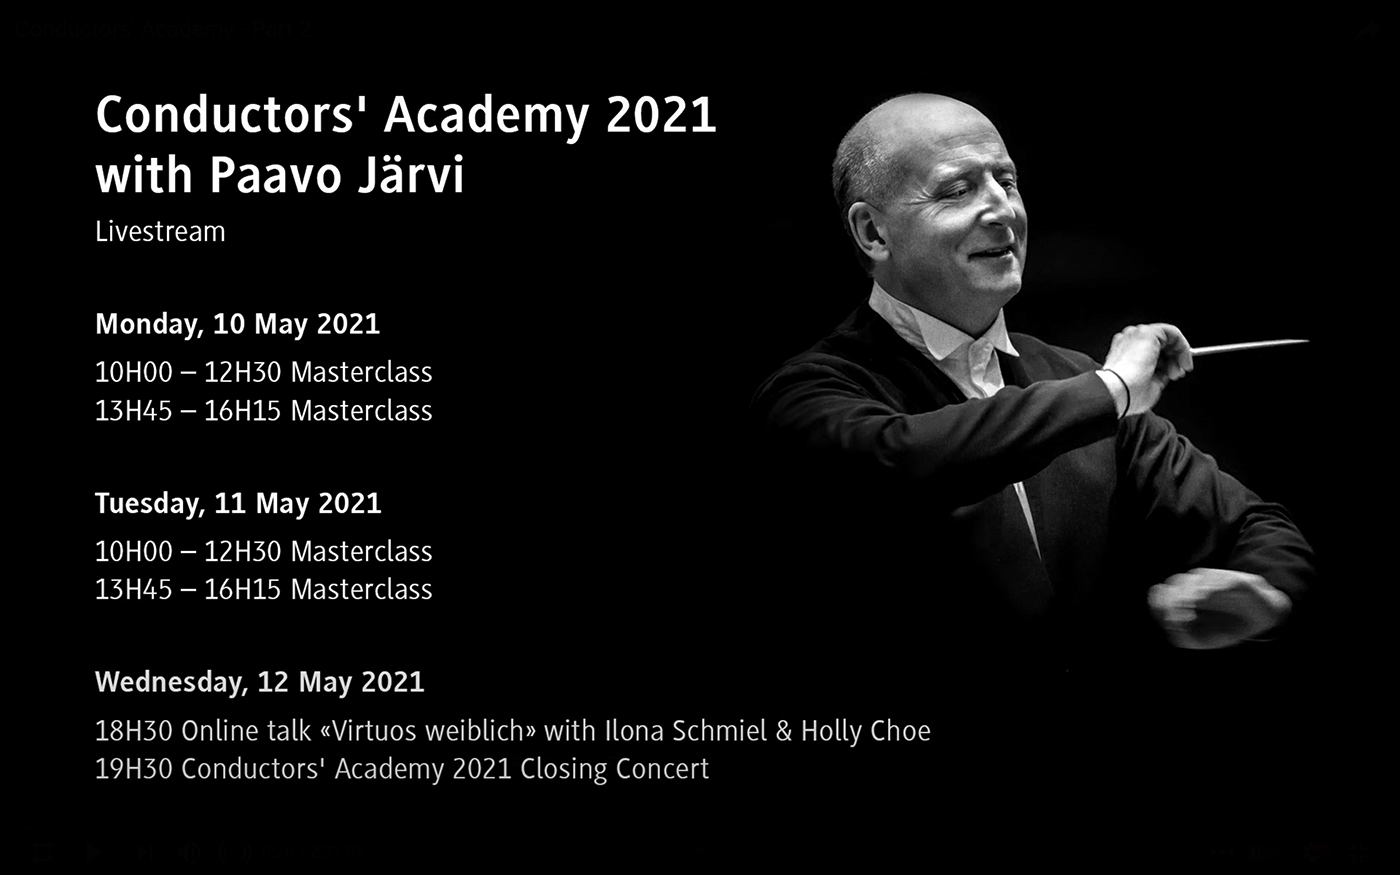 Zurich Young Conductor's Academy 2021